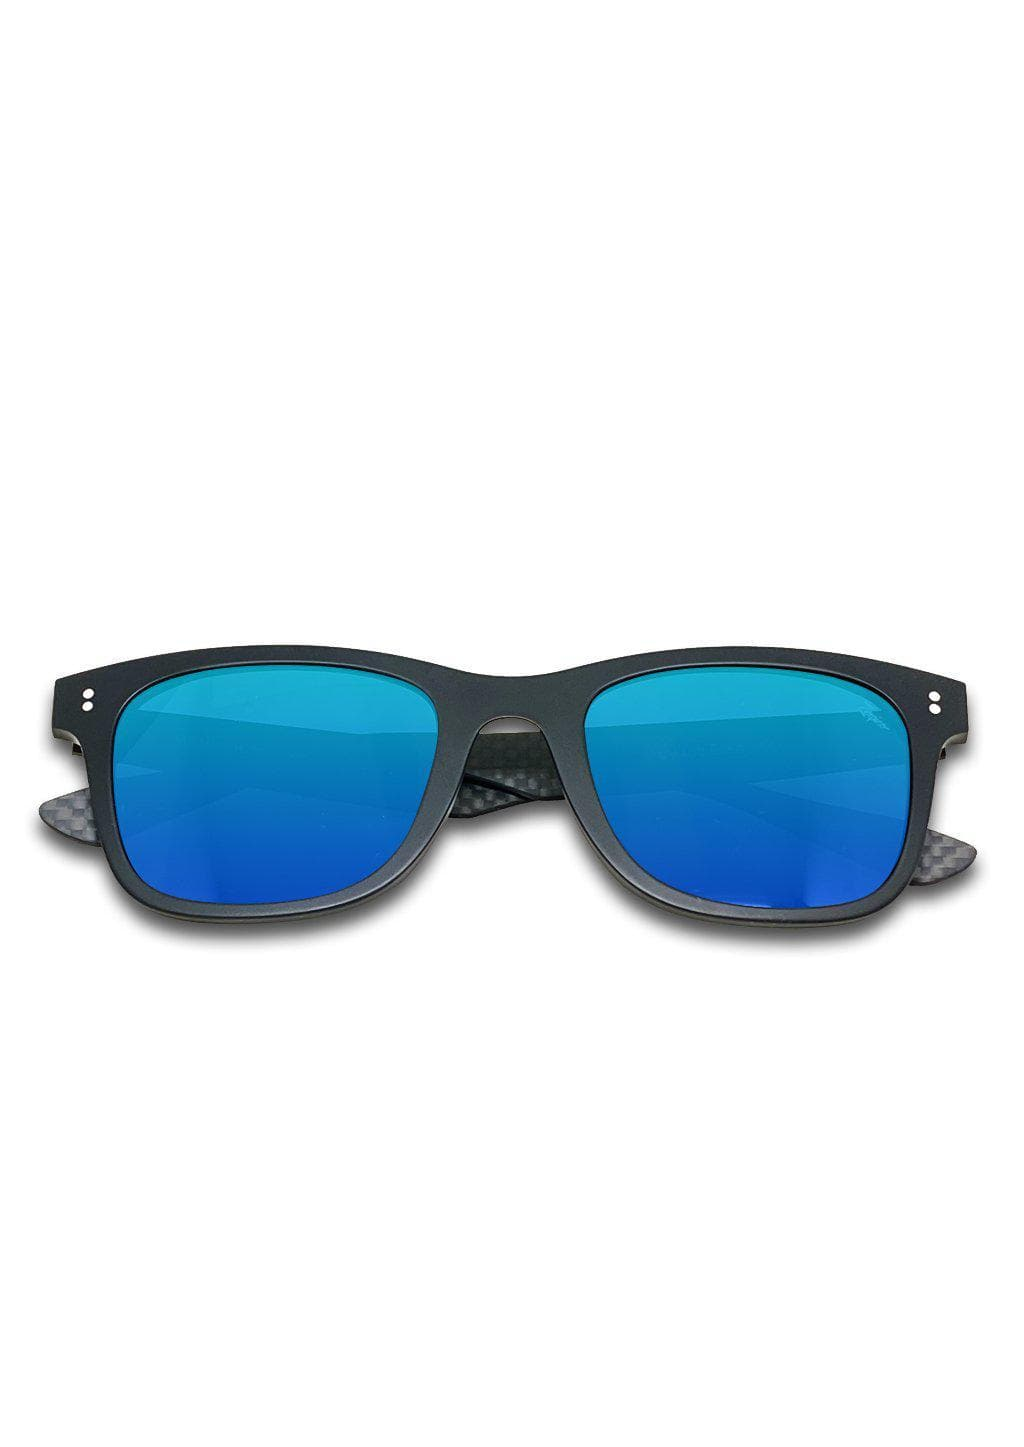 Hybrid - Atom, carbon fiber and acetate sunglasses of the highest quality. Front in black with blue lenses.